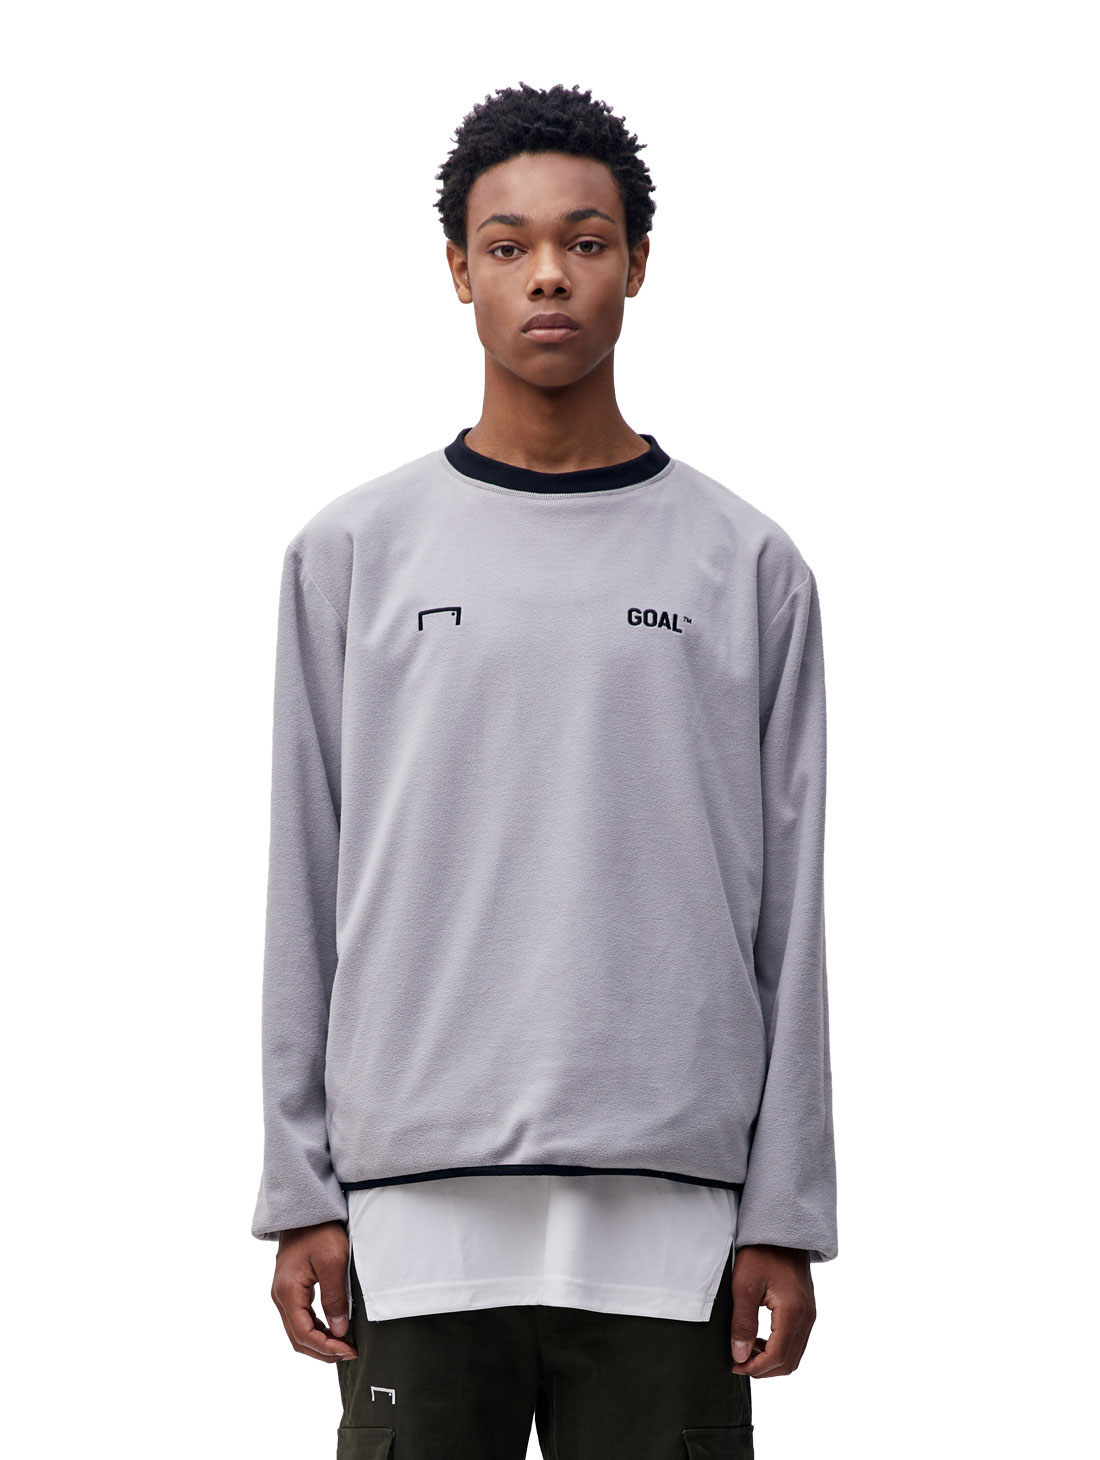 REVERSIBLE PULLOVER - GREY/BLACK